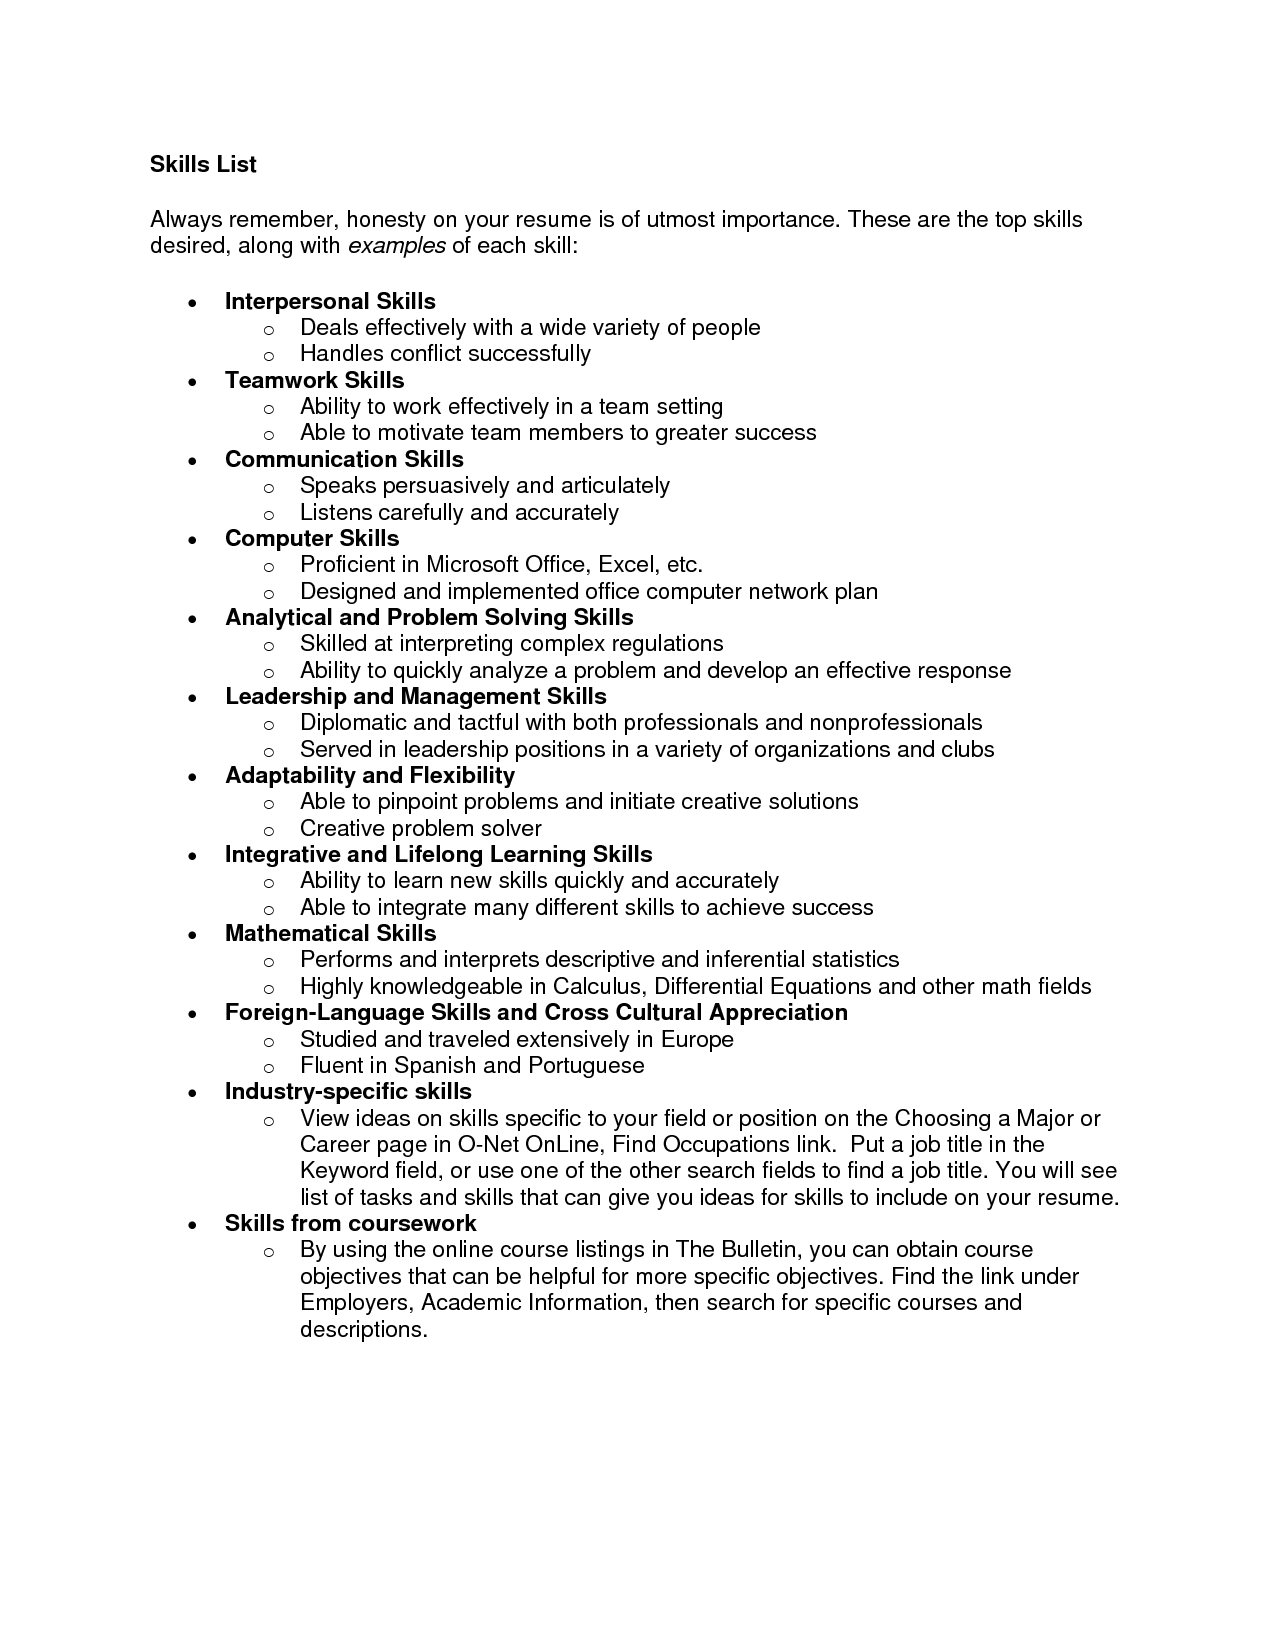 resume Good Resume Skills abilities list for resumes jianbochen com of the best skills samplebusinessresume com